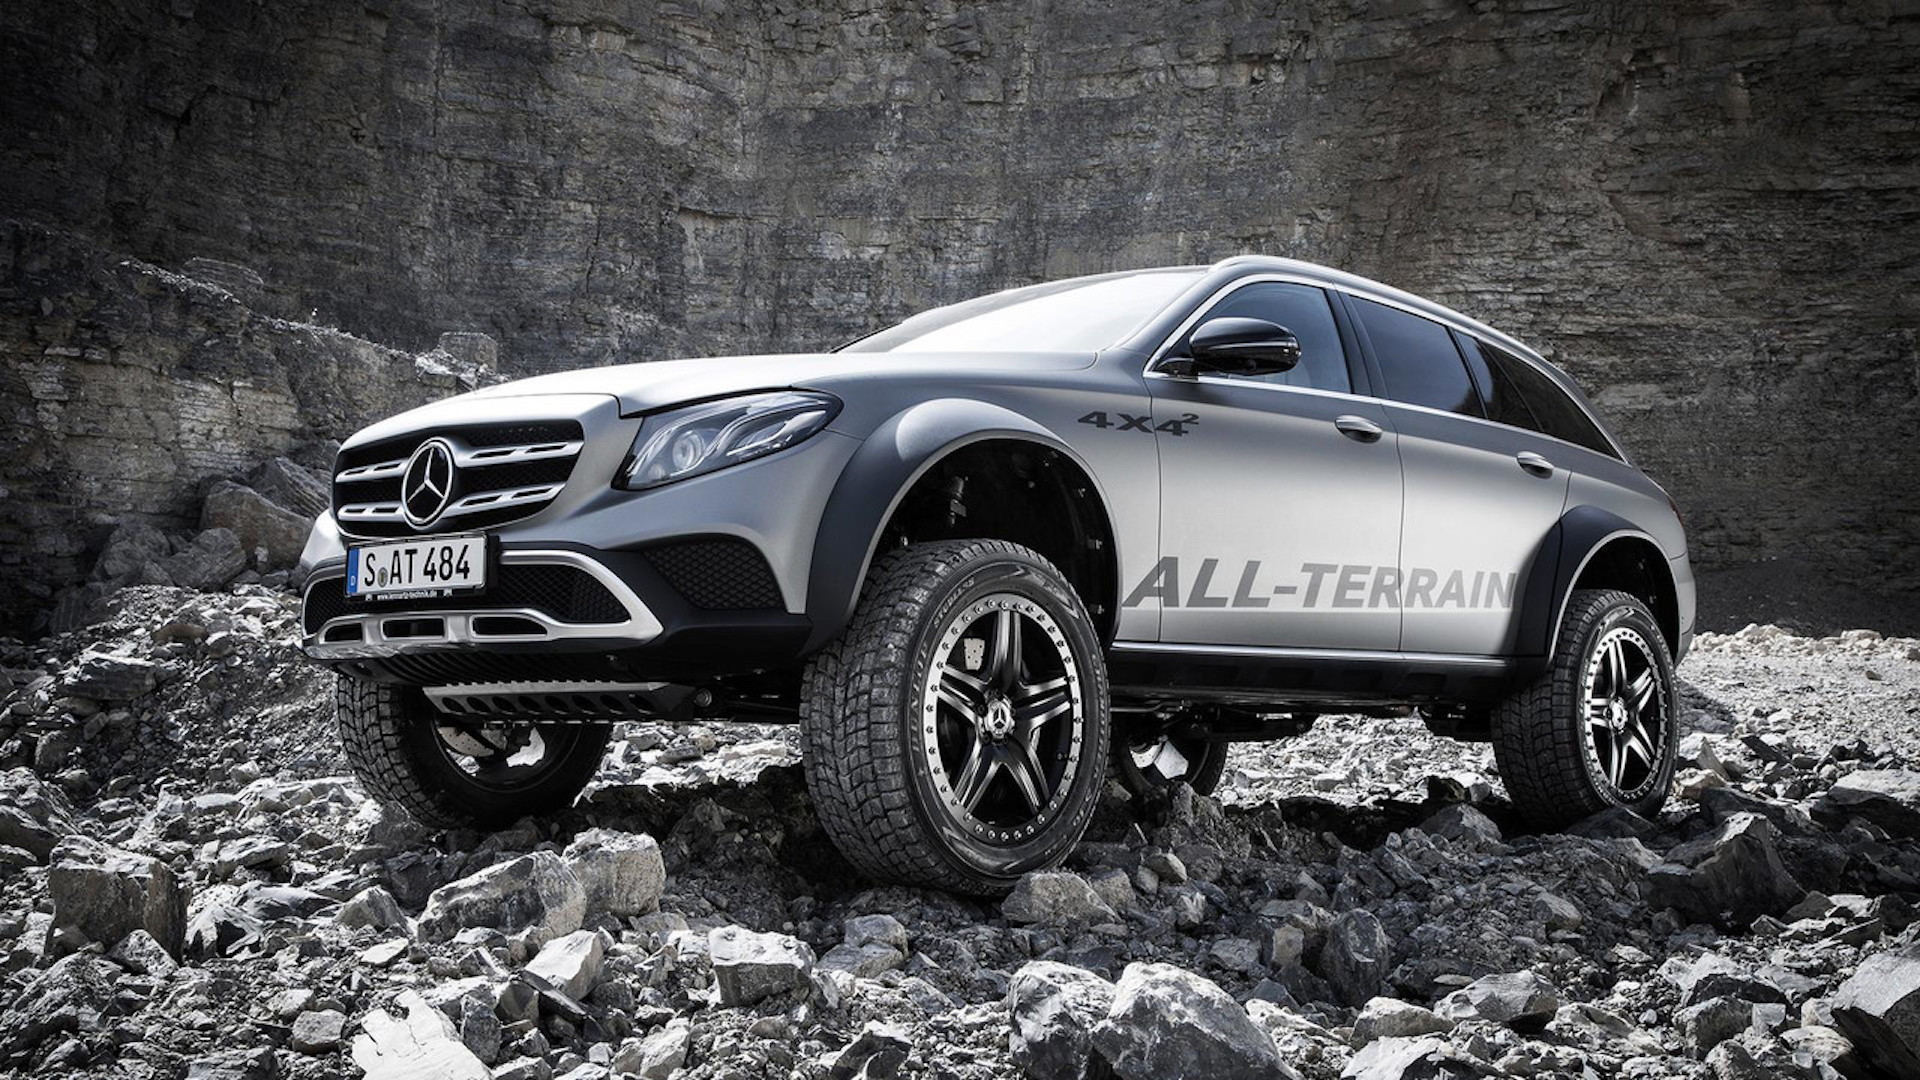 Mercedes-Benz E-Class All-Terrain 4x4²